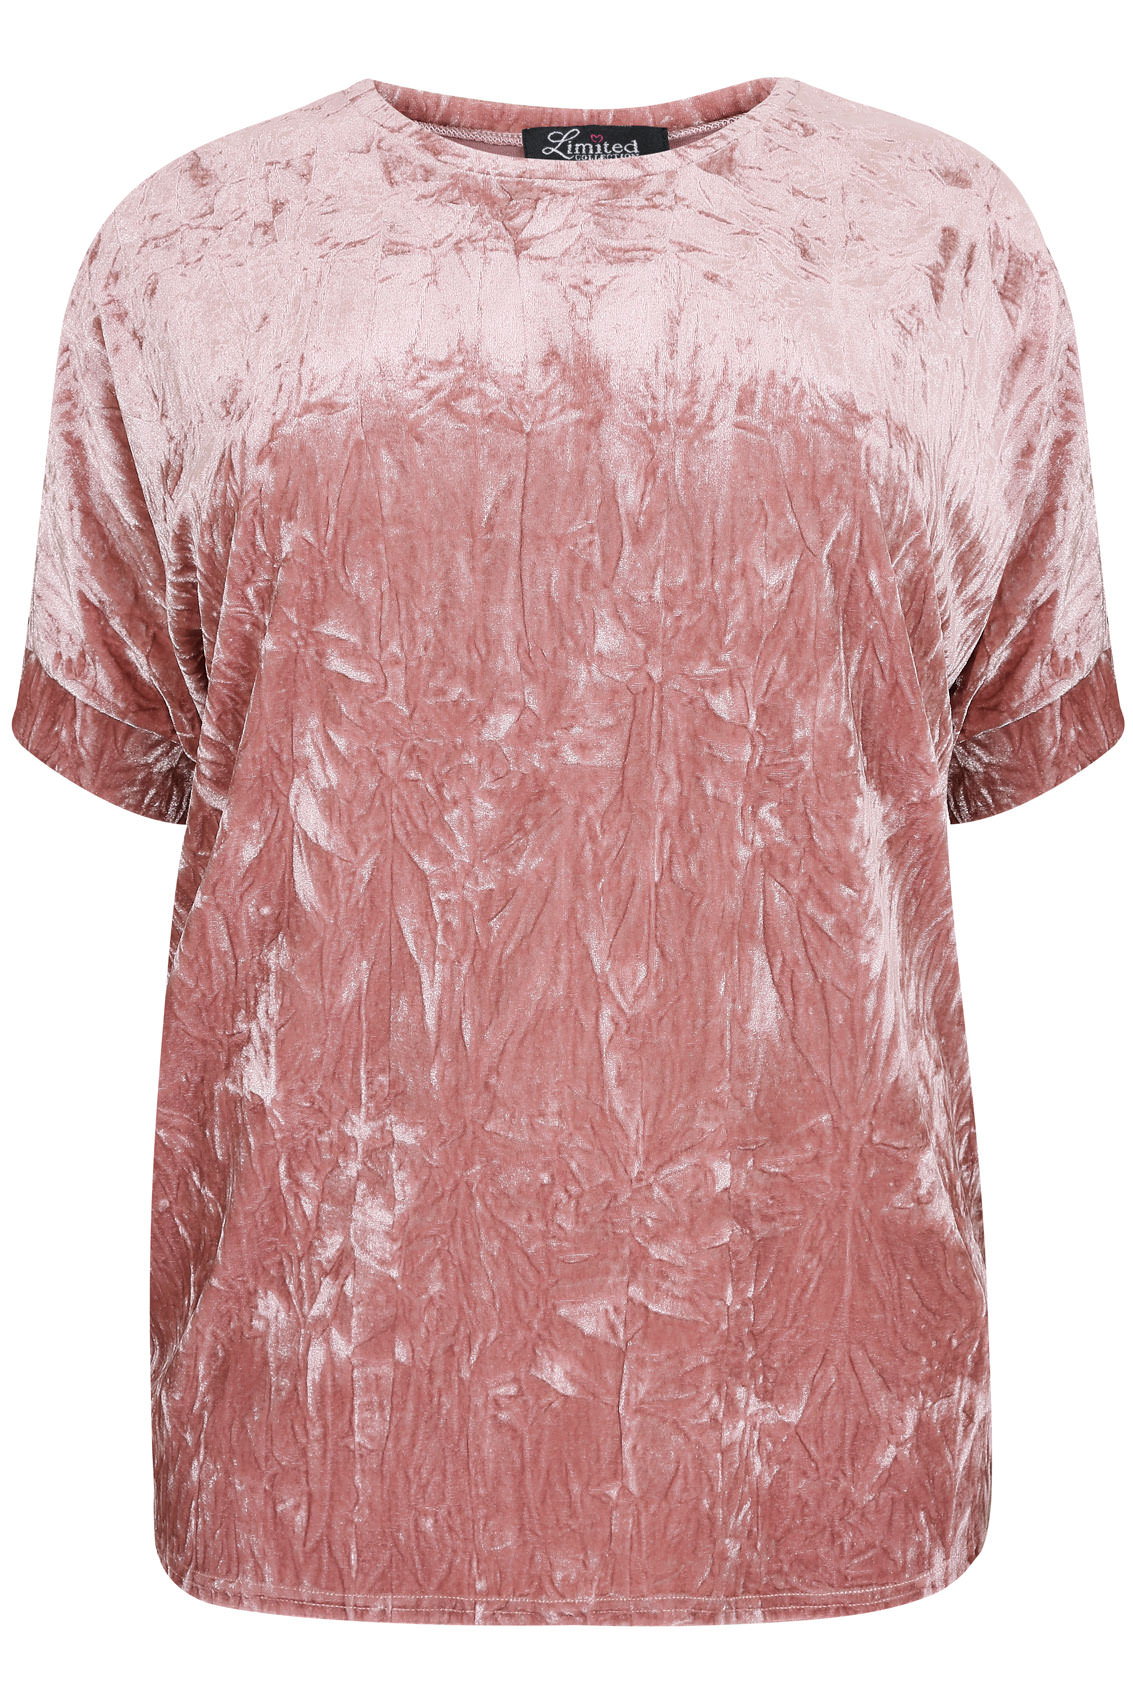 beac691735b11 LIMITED COLLECTION Dusty Pink Crushed Velvet Boyfriend Top